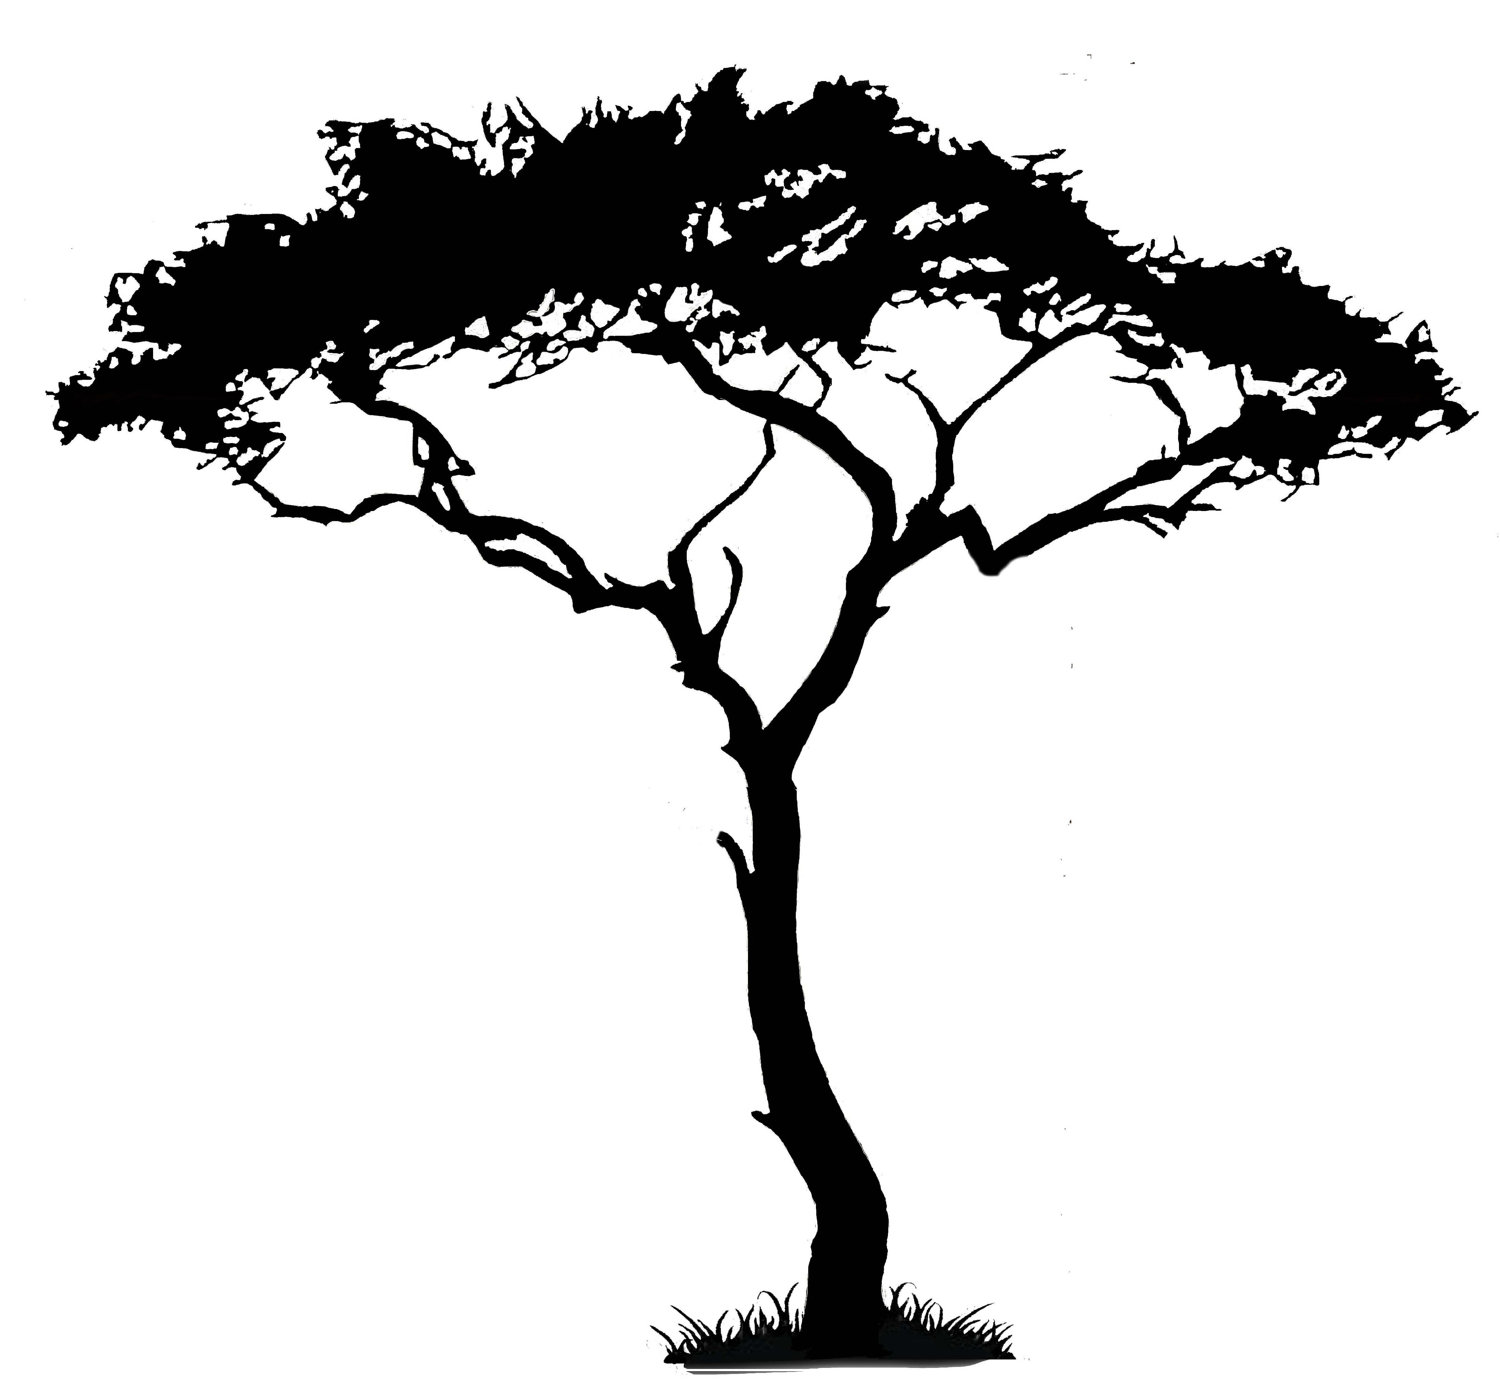 12 Acacia Tree Silhouette Clipart Free Cliparts That You Can Download